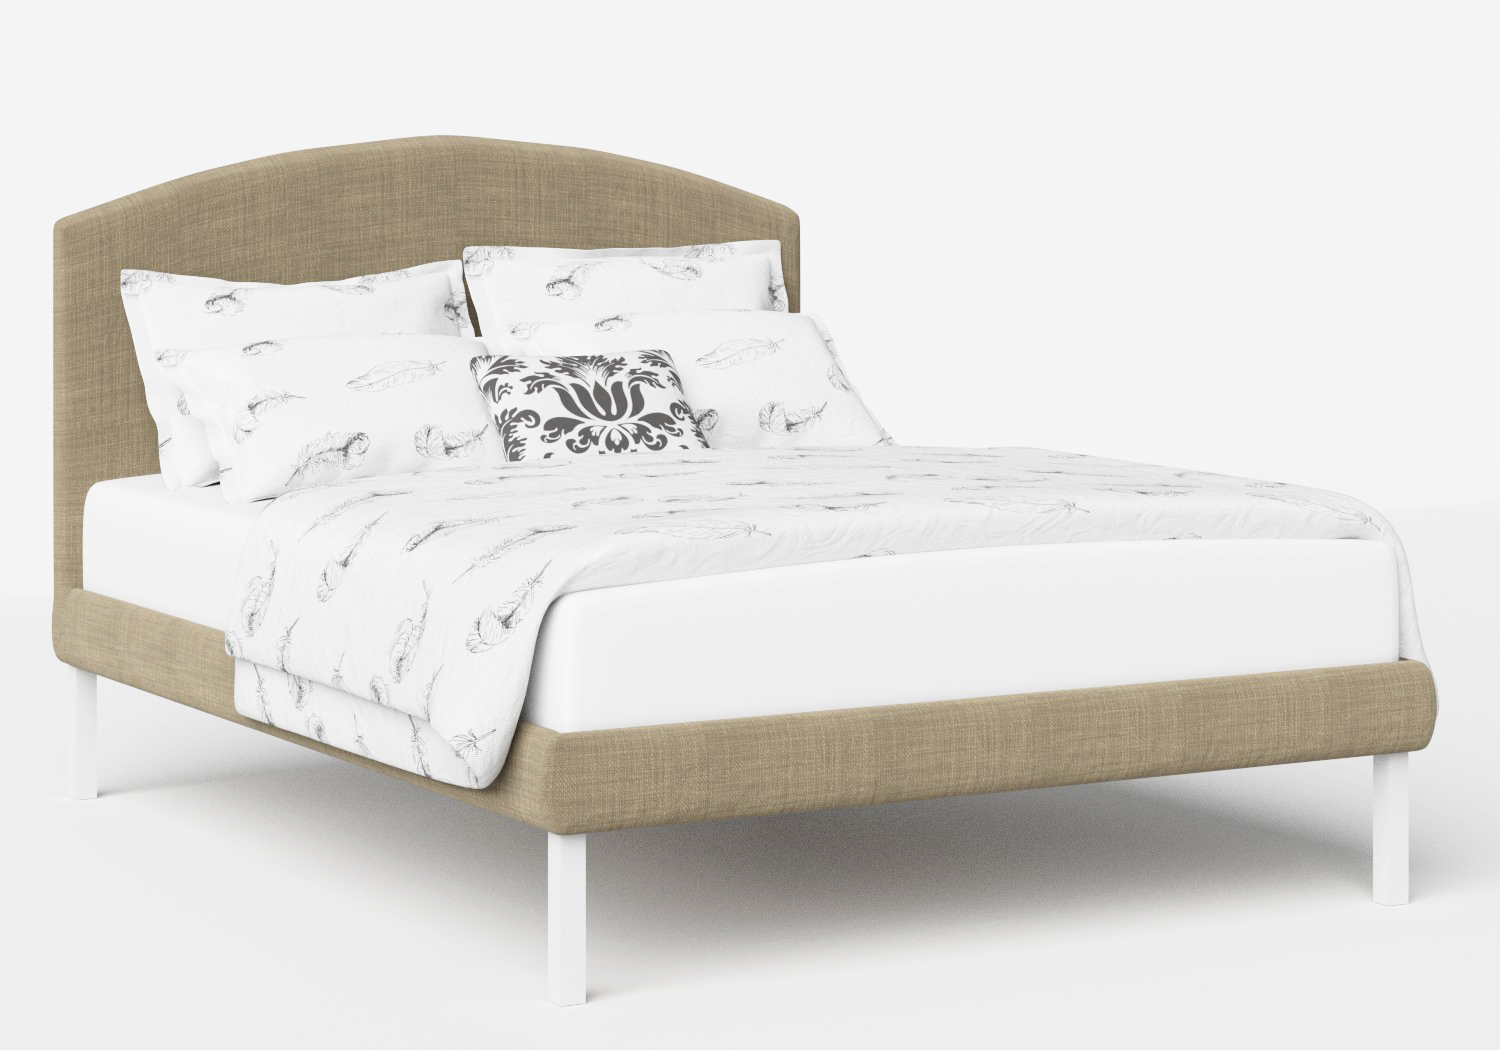 Okawa Upholstered Bed in Straw fabric shown with Juno 1 mattress